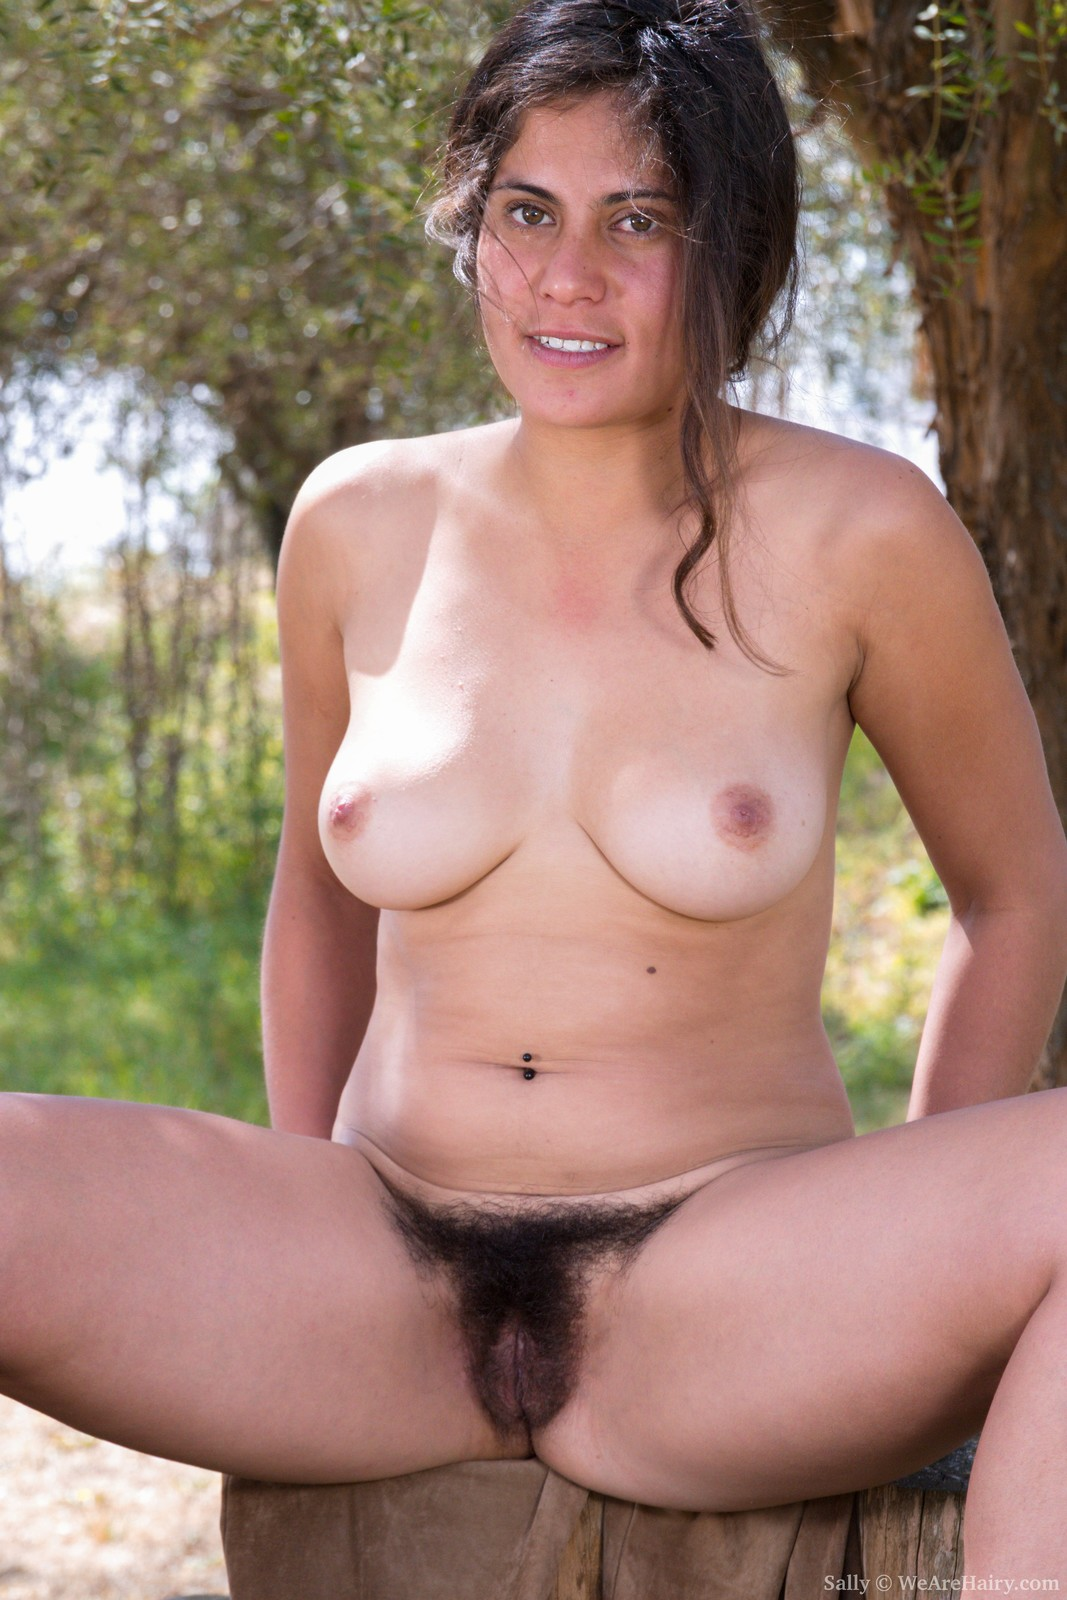 sally-is-outdoors-enjoying-the-sun-and-wants-to-get-some-sun-on-her-naked-body.-she-strips-naked-and-shows-off-her-36c-breasts-and-hairy-pussy.-her-body-is-sexy-outside-and-her-bush-is-so-beautiful.7.jpg